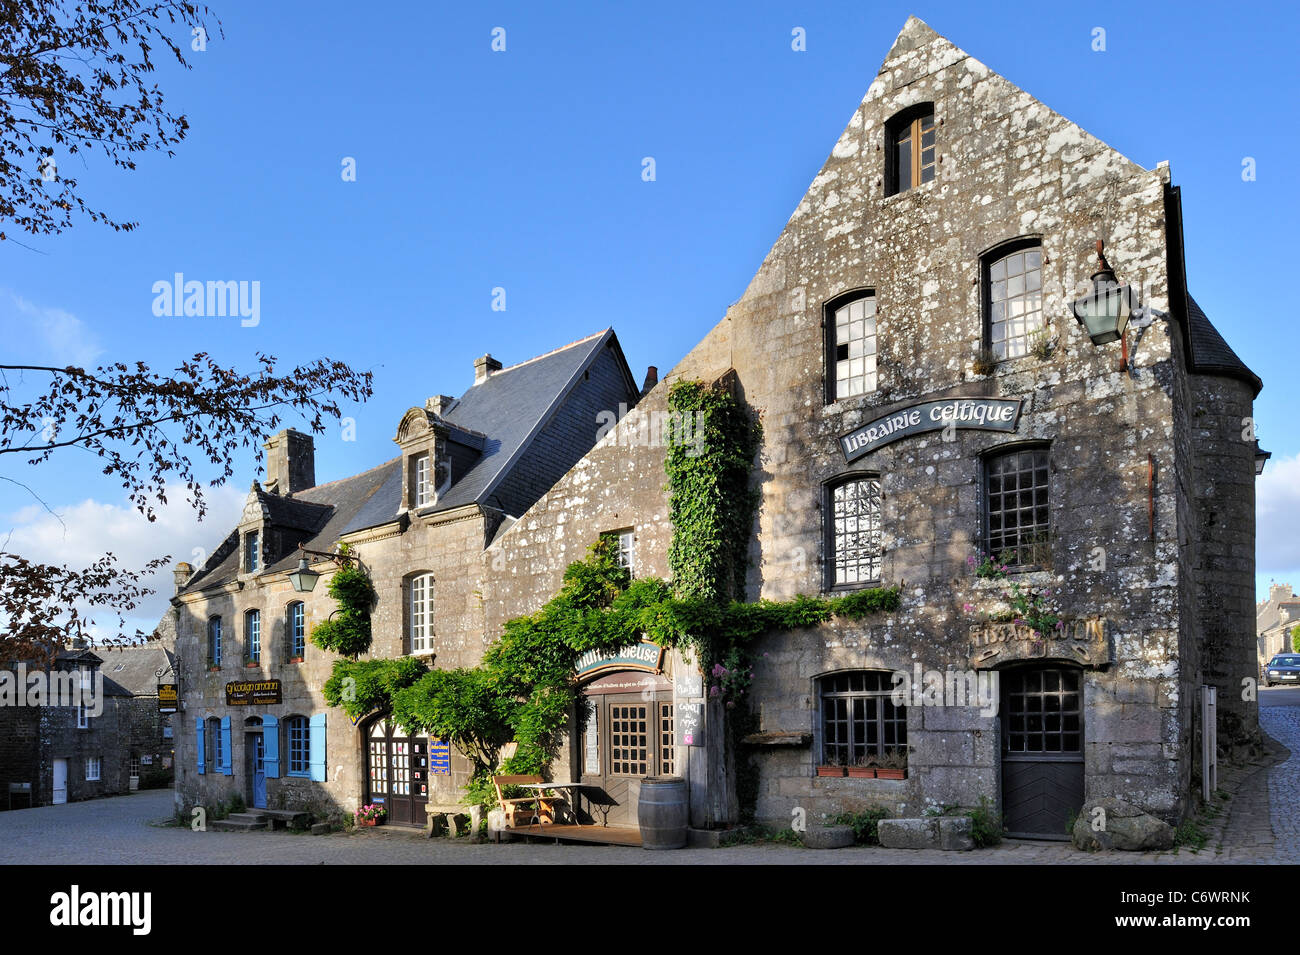 Medieval houses in the picturesque village Locronan, Finistère, Brittany, France - Stock Image